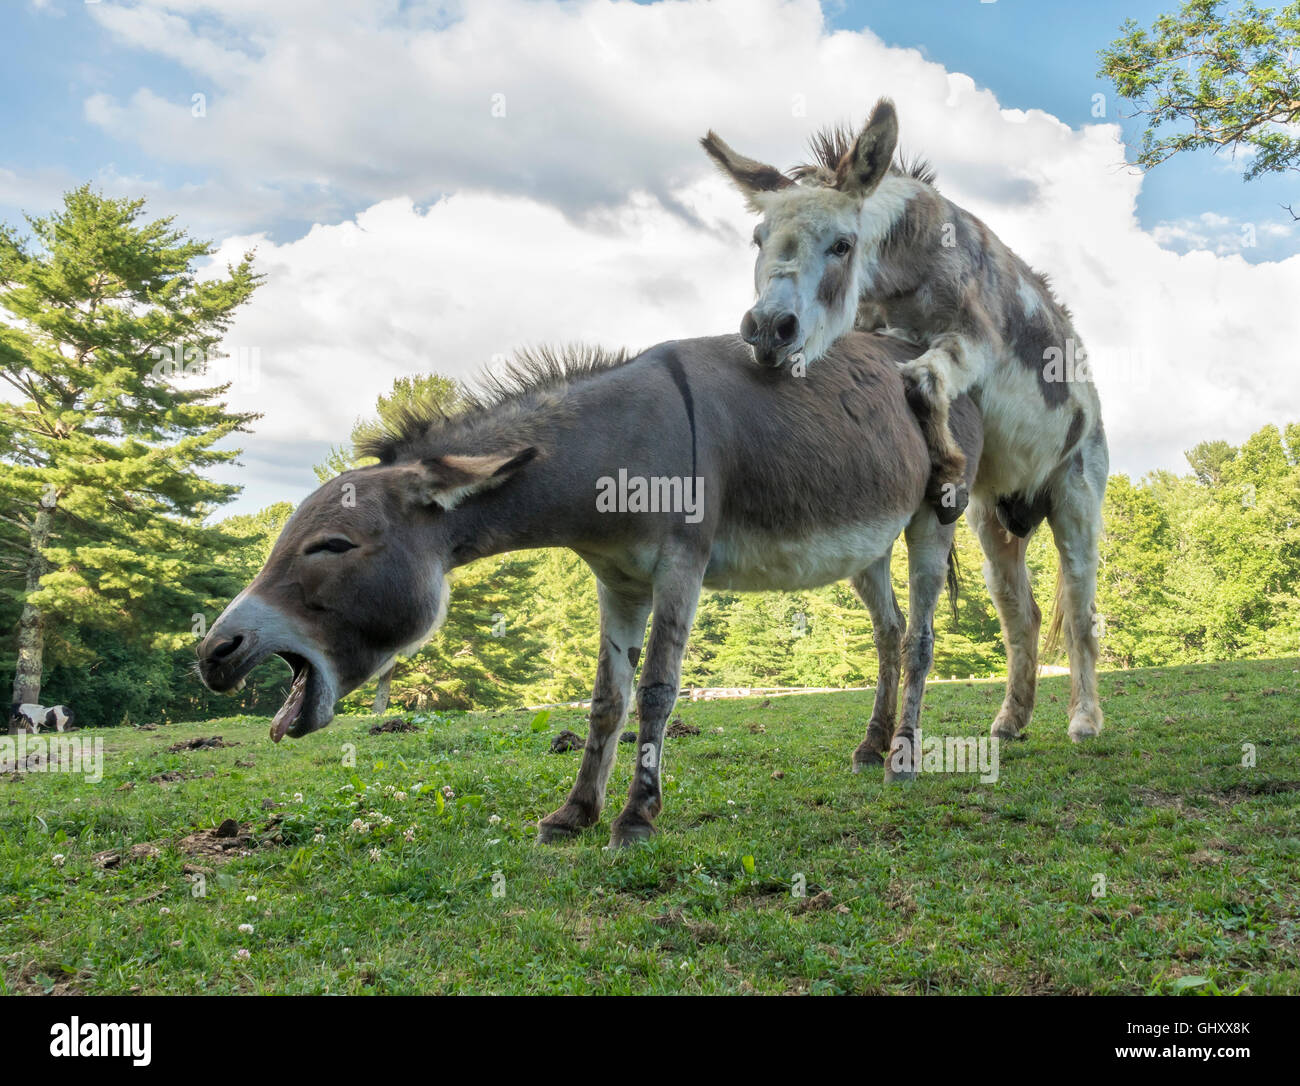 Pics of donkeys mating